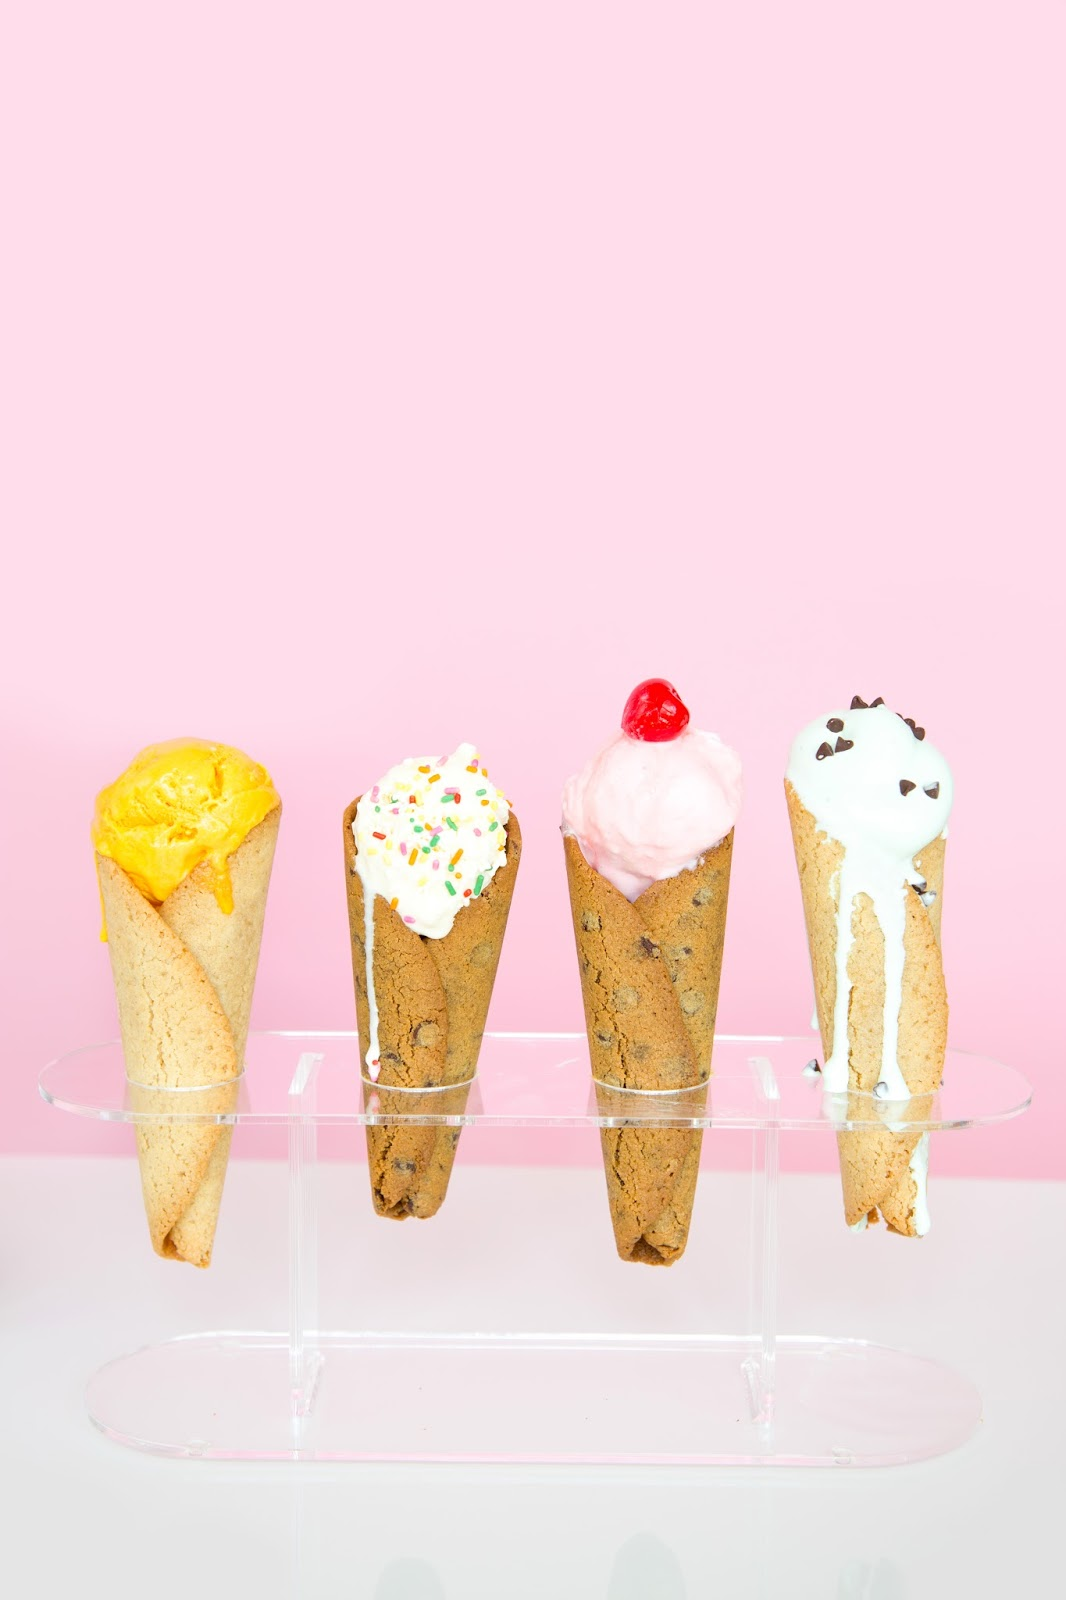 thesis paper about ice cream Life is like an ice cream enjoy it before it melts essay essay dissertation methodology ethics essay thesis for pride and prejudice colin.